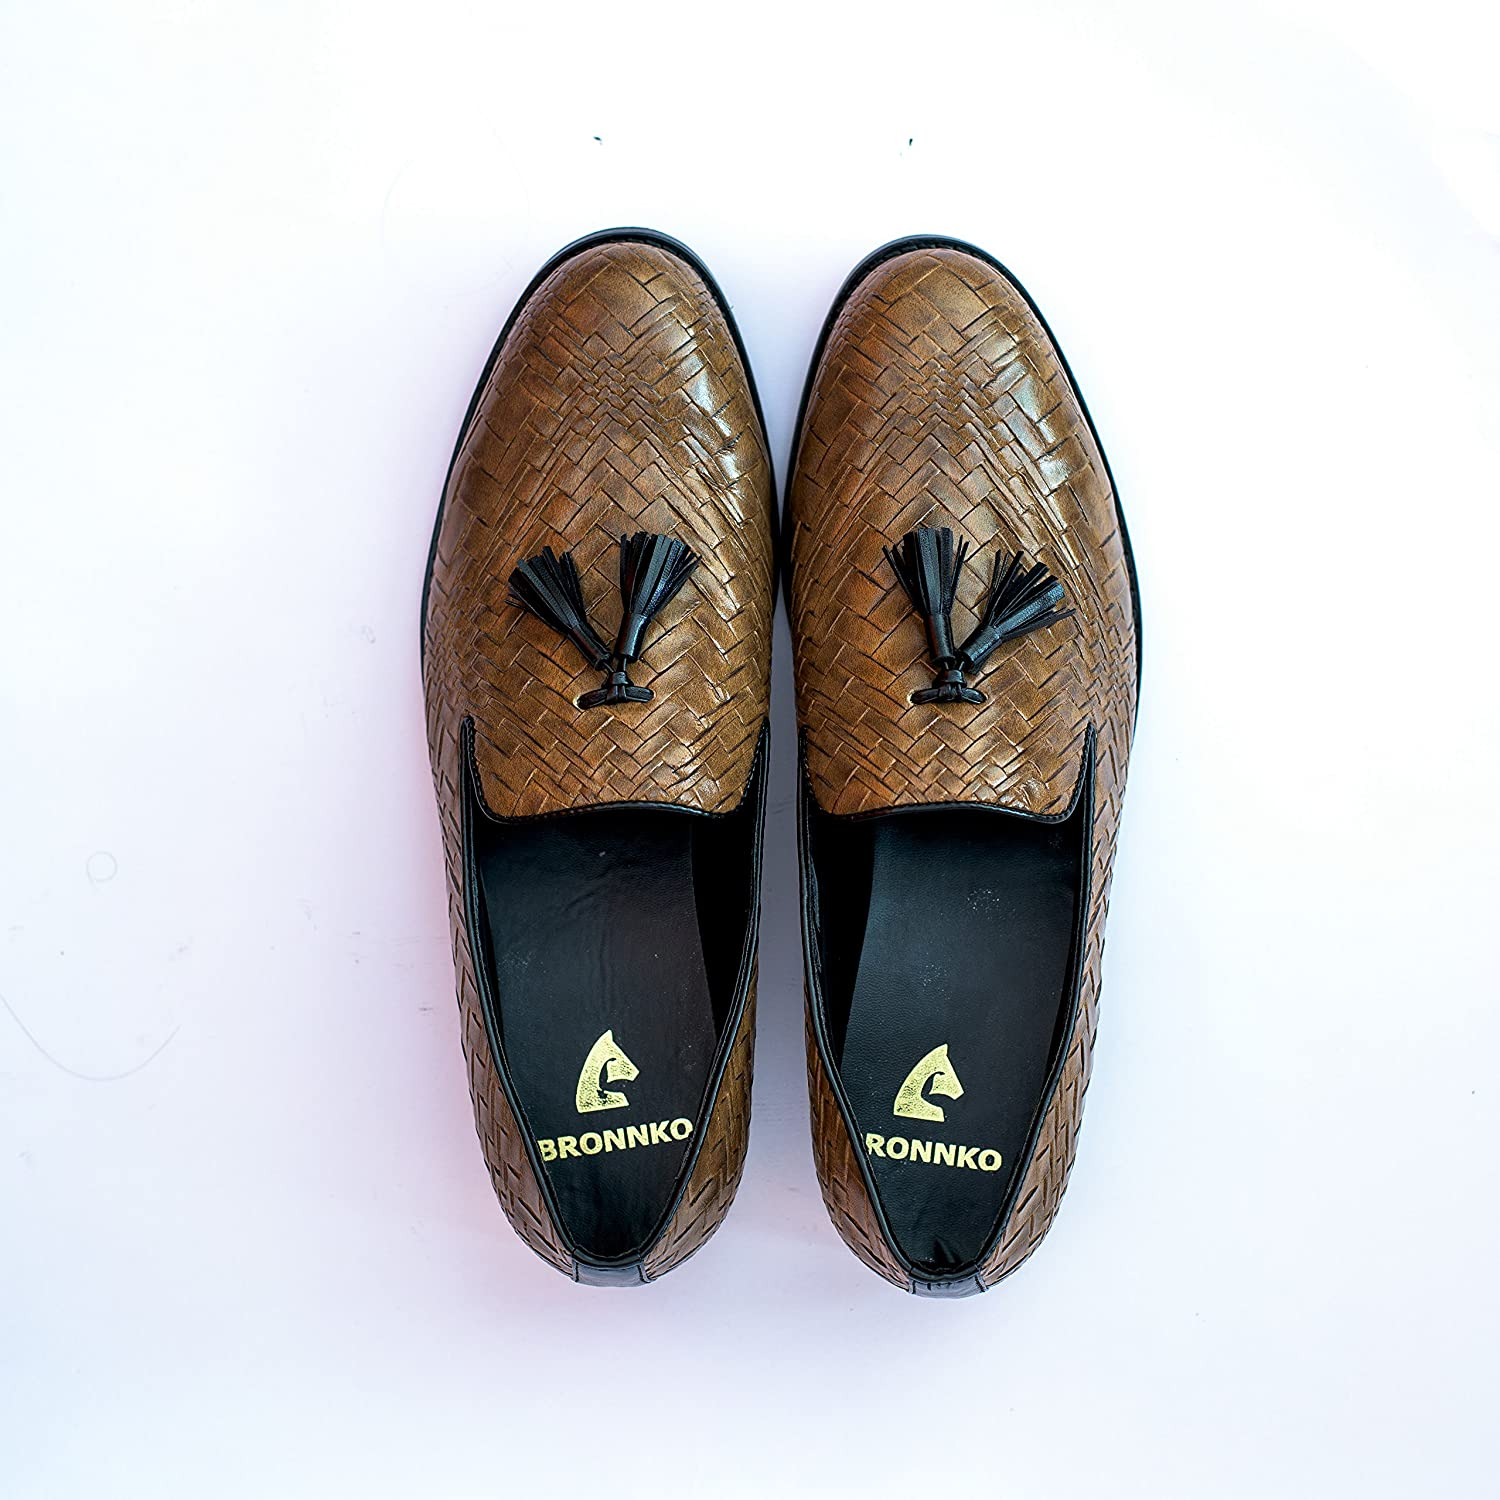 398a37b1f4b143 Bronnko Brown Tassel Men's Loafers Formal / Casual Shoes: Buy Online at Low  Prices in India - Amazon.in